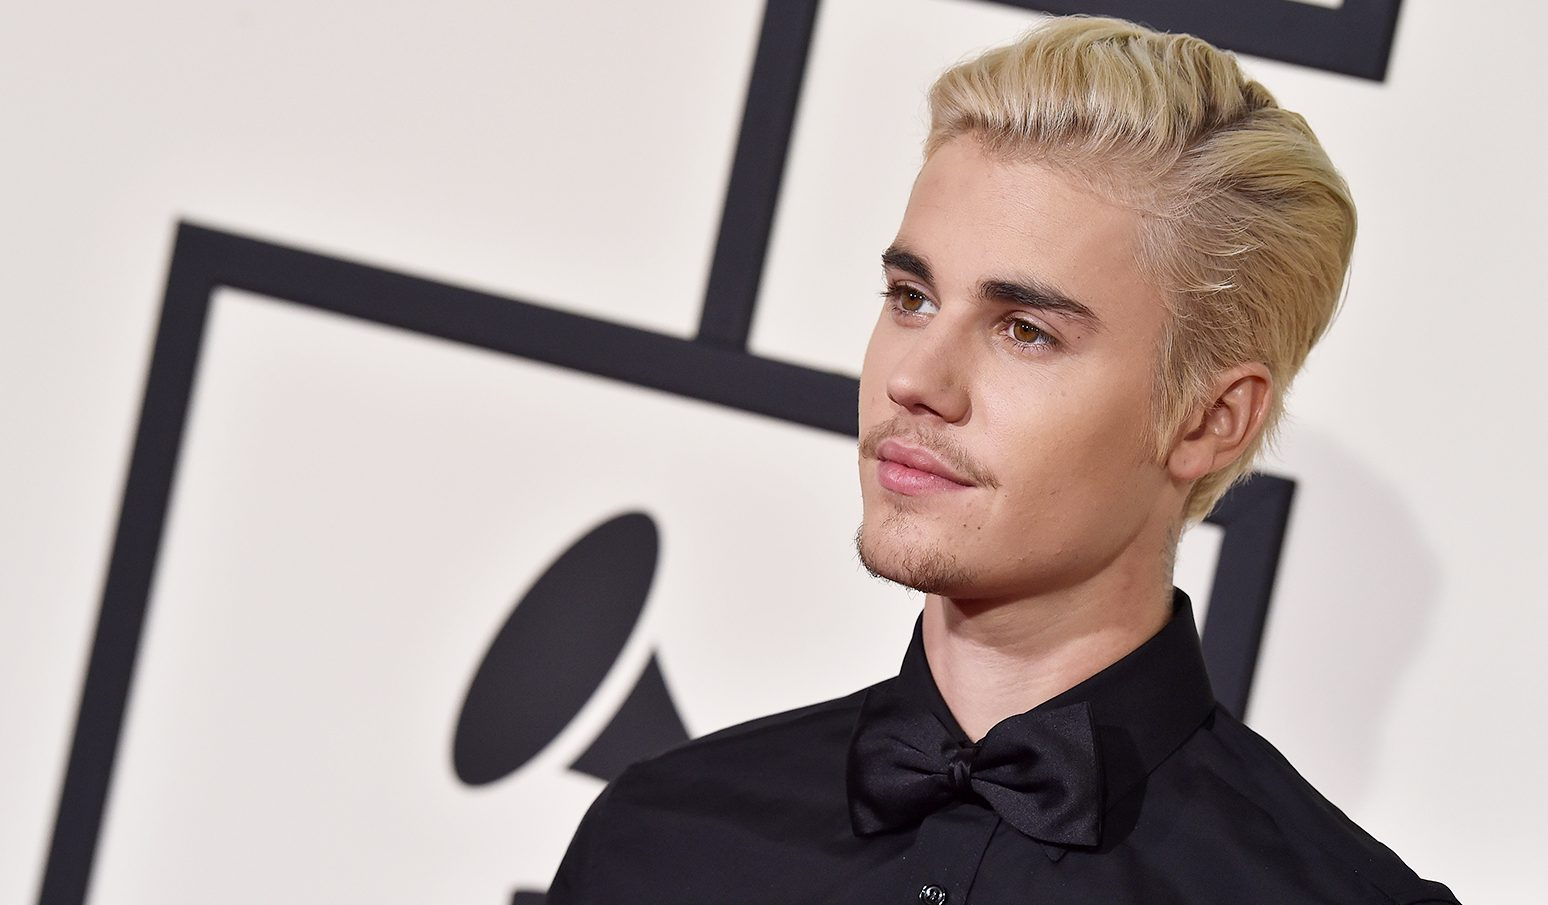 LOS ANGELES, CA – FEBRUARY 15:  Singer Justin Bieber arrives at The 58th GRAMMY Awards at Staples Center on February 15, 2016 in Los Angeles, California.  (Photo by Axelle/Bauer-Griffin/FilmMagic)